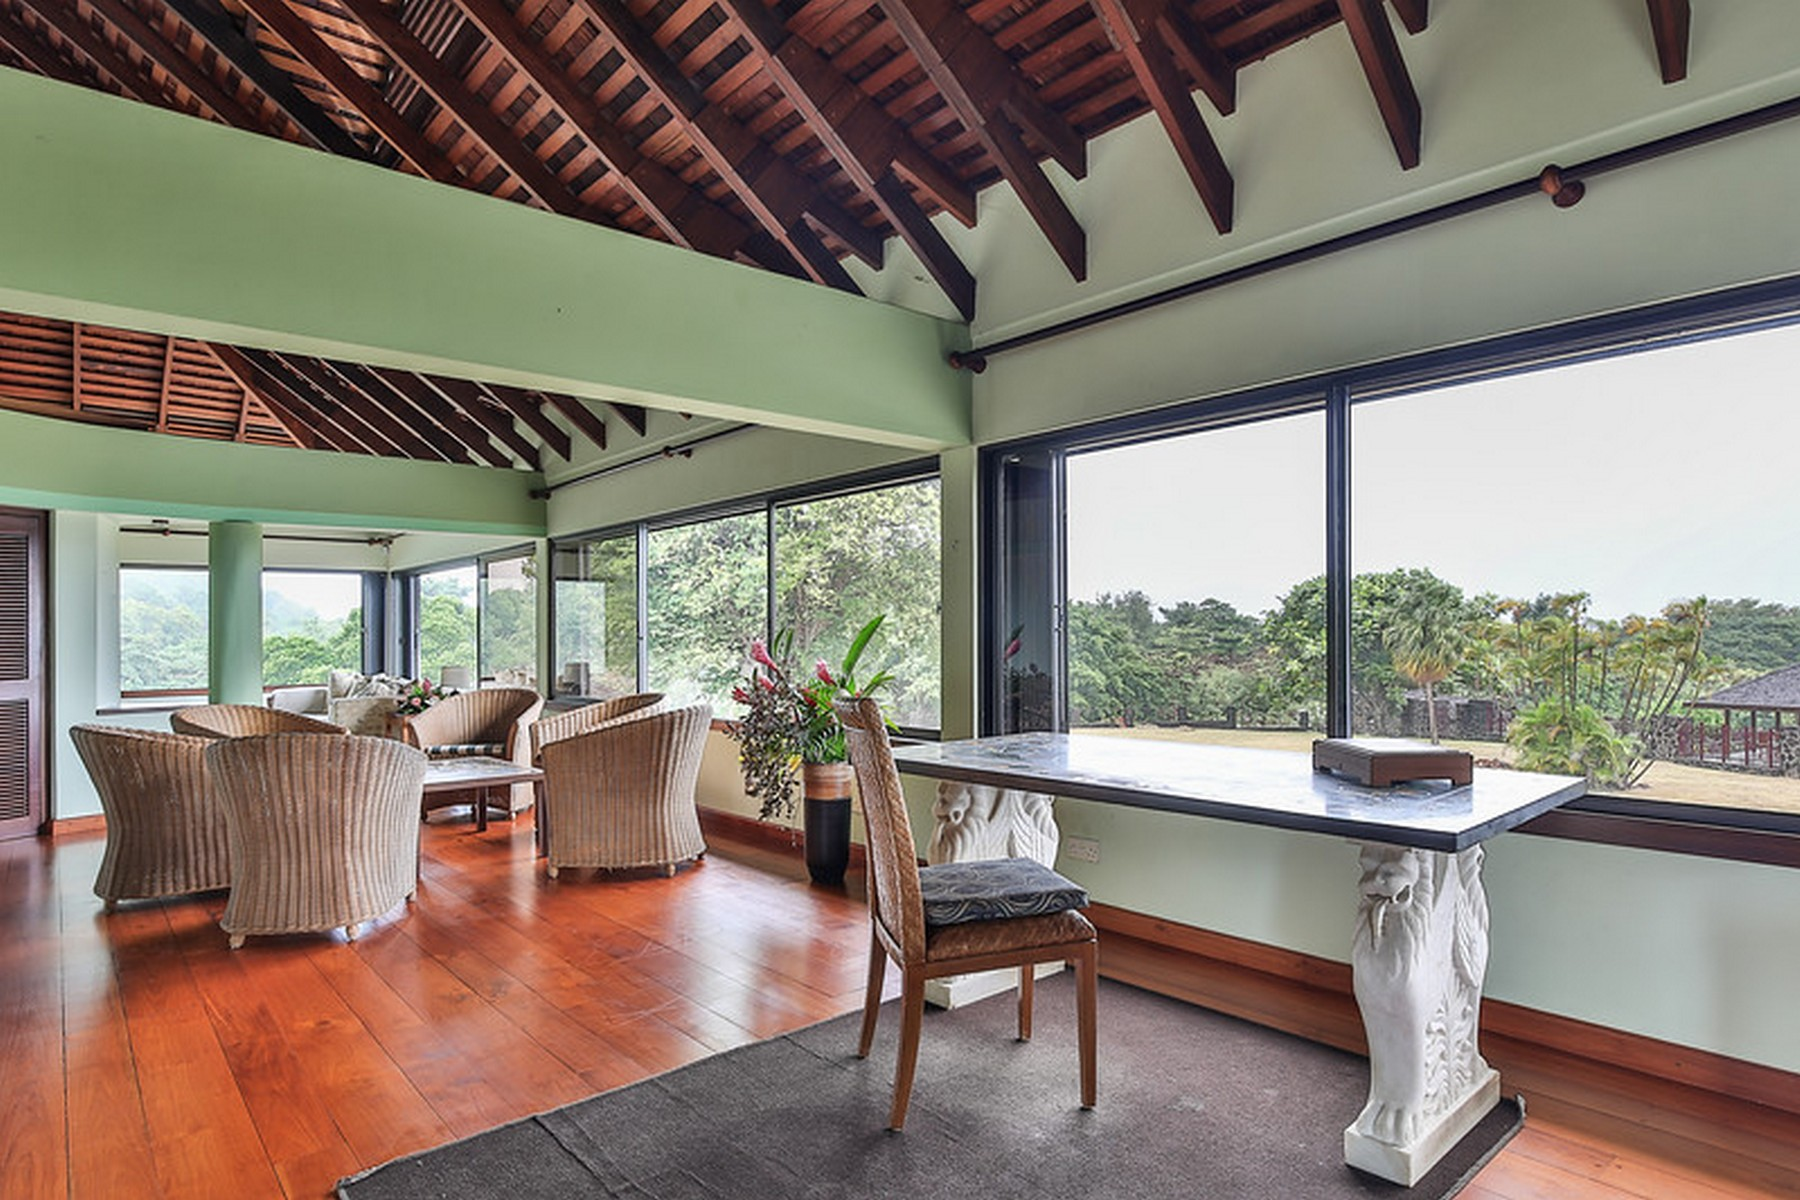 st lucia realty for sale in rodney bay